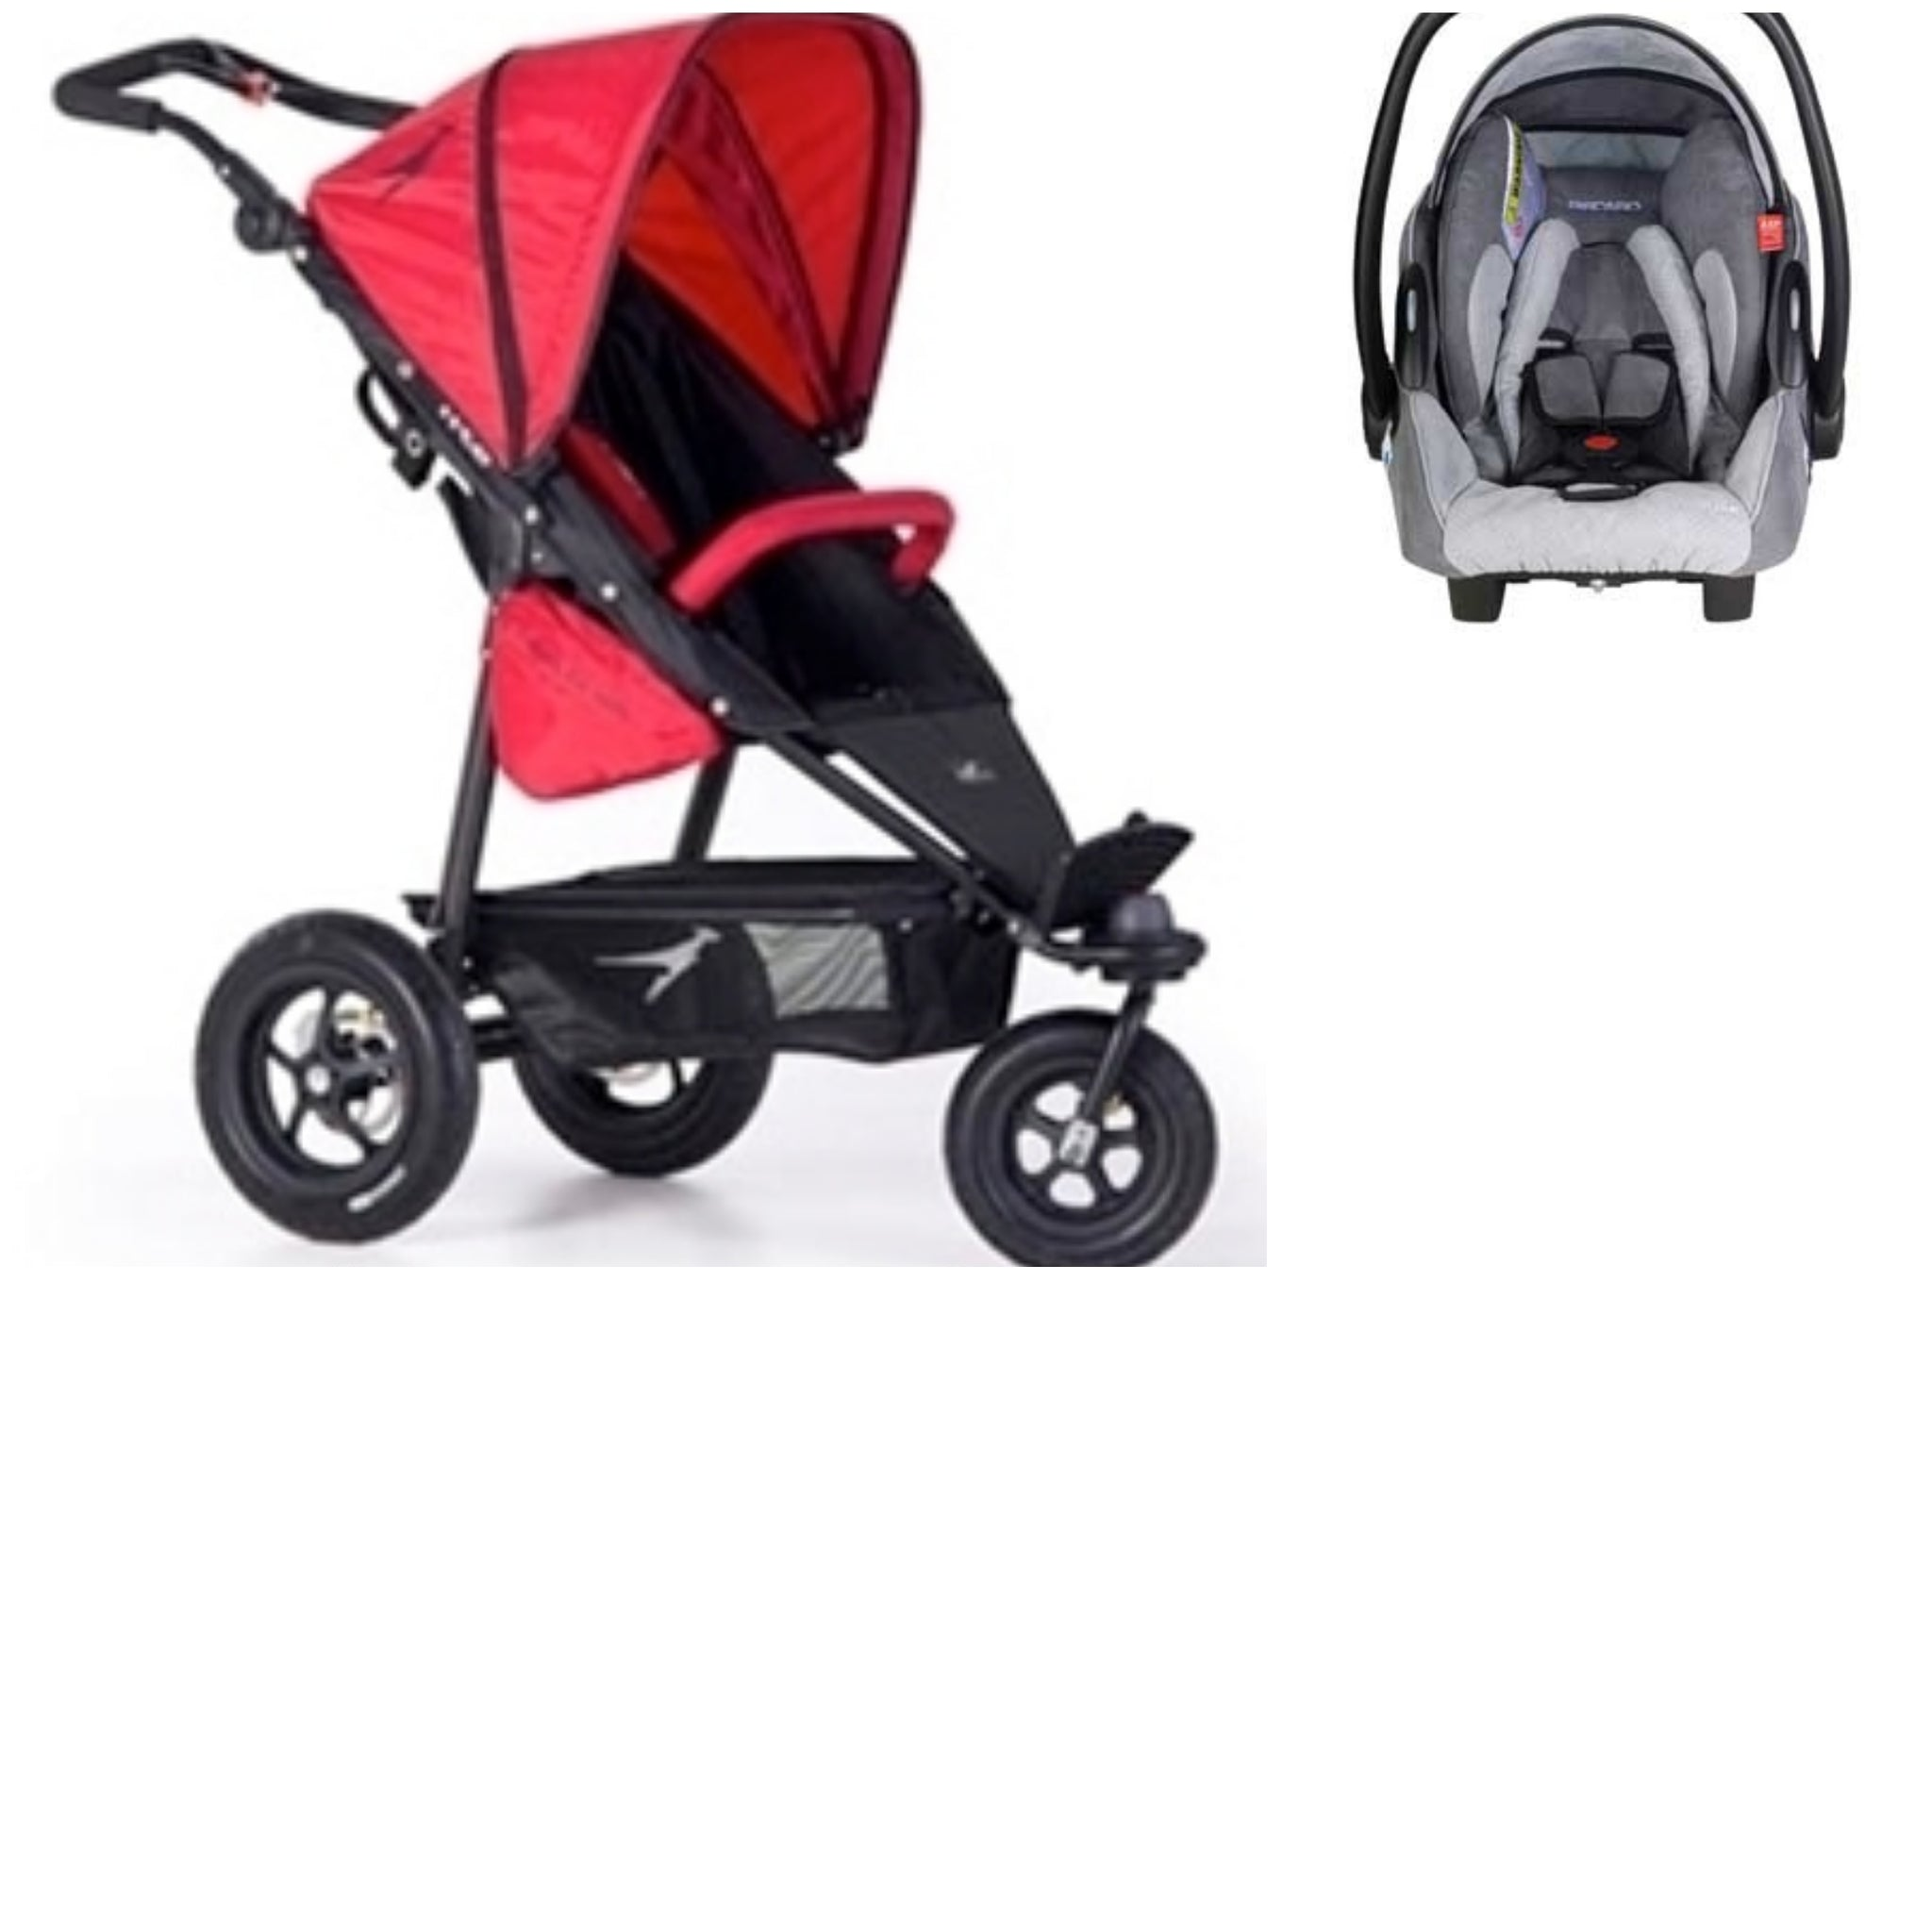 TFK Joggster Twist Lite Stroller in Cranberry with Grey Recaro Young Profi Plus Baby Car Seat